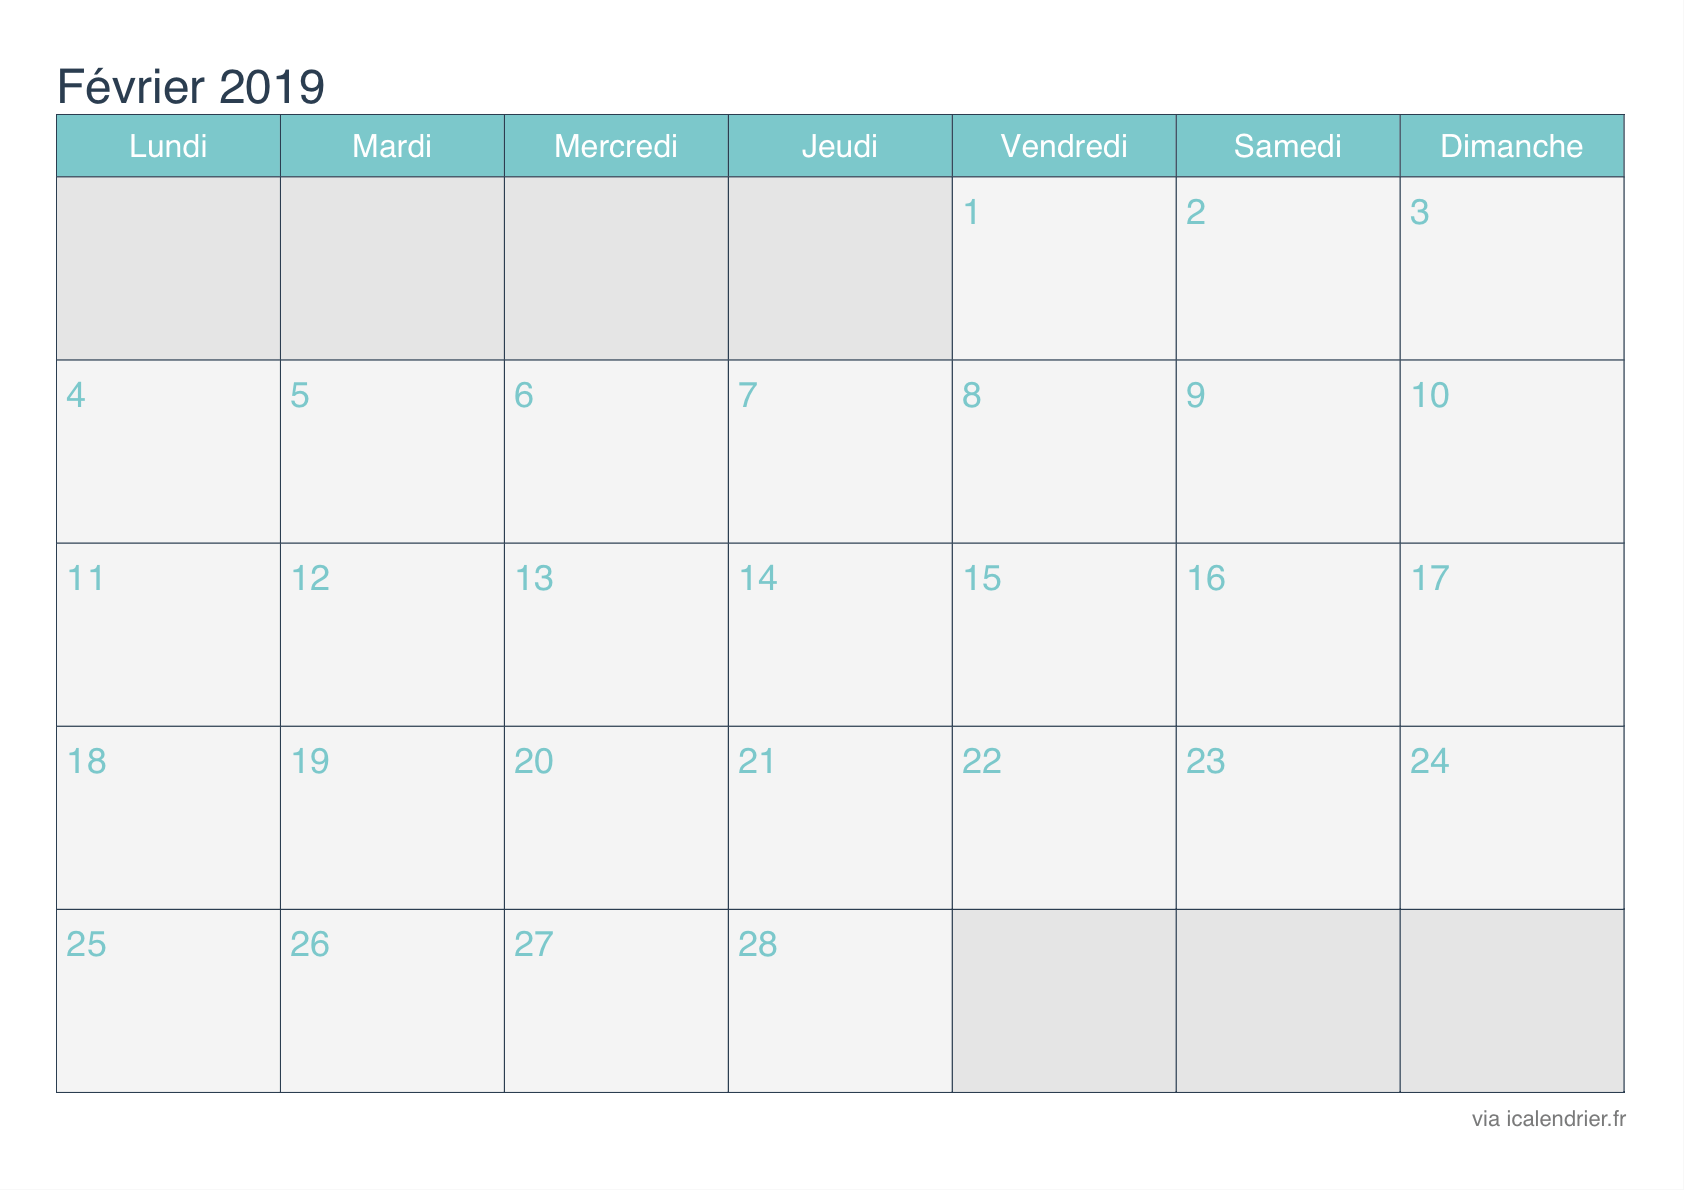 Fevrier Calendrier.Calendrier Fevrier 2019 A Imprimer Icalendrier